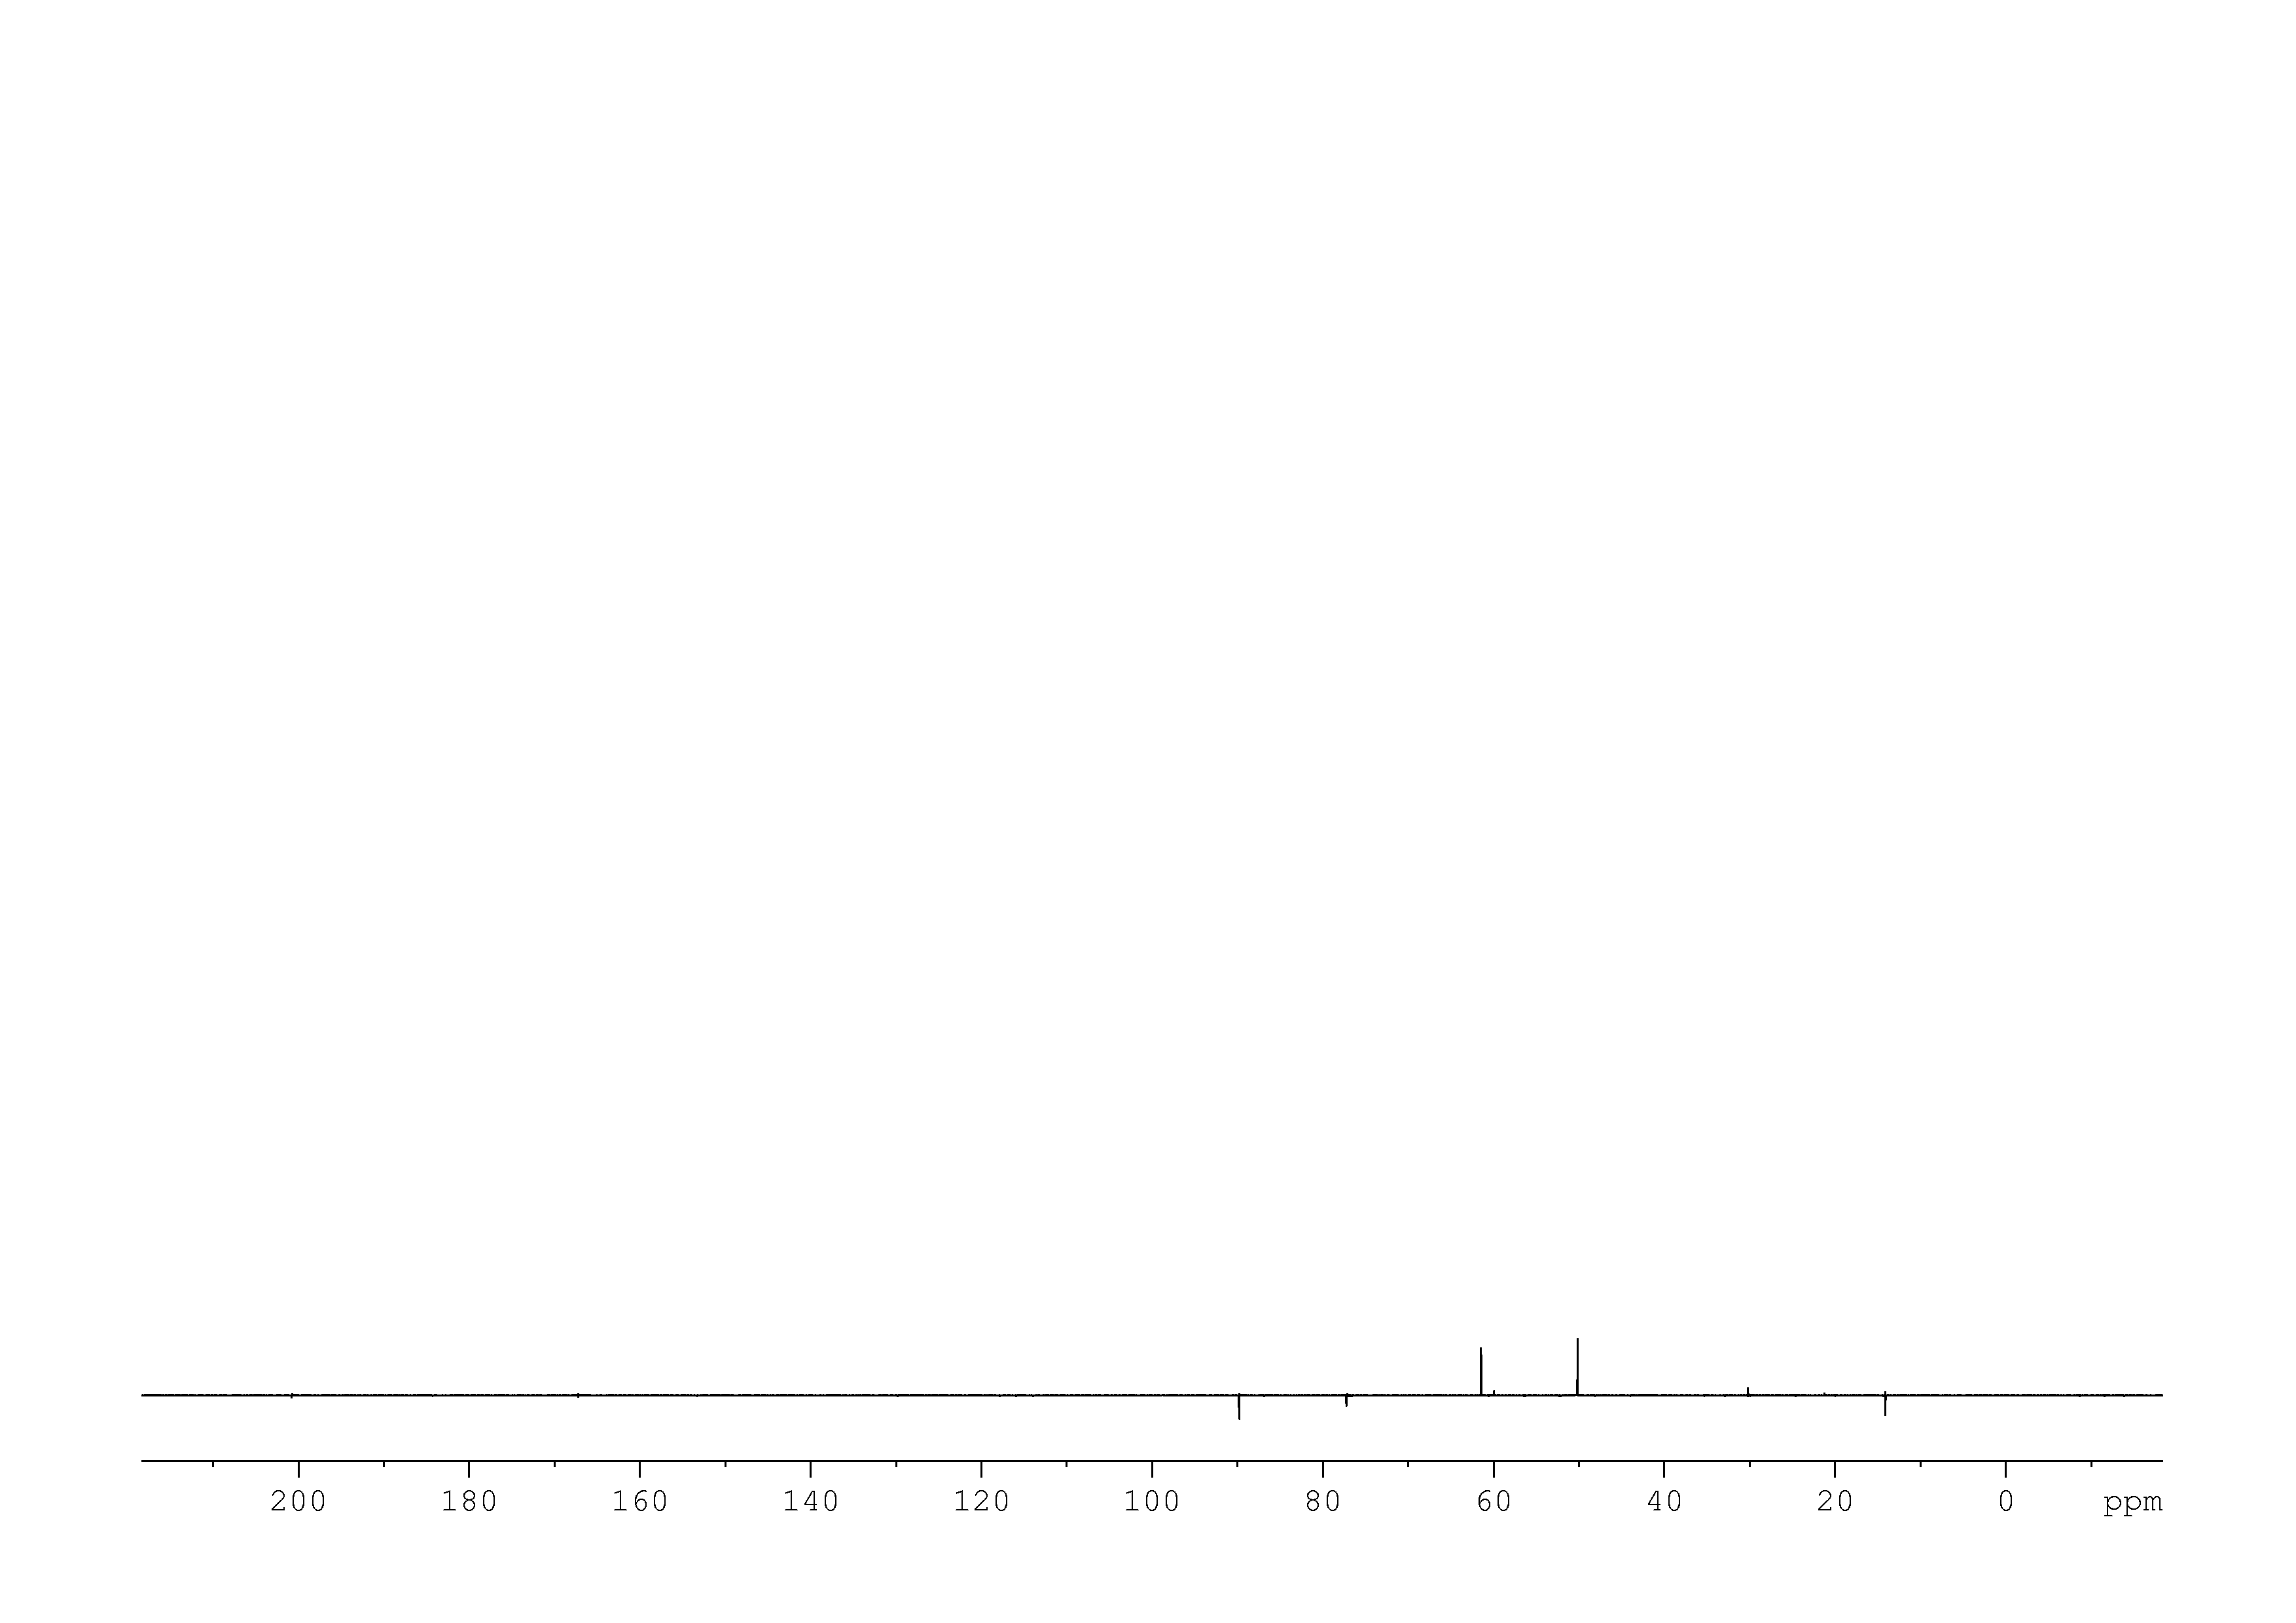 1D DEPT90, n/a spectrum for Ethyl acetoacetate